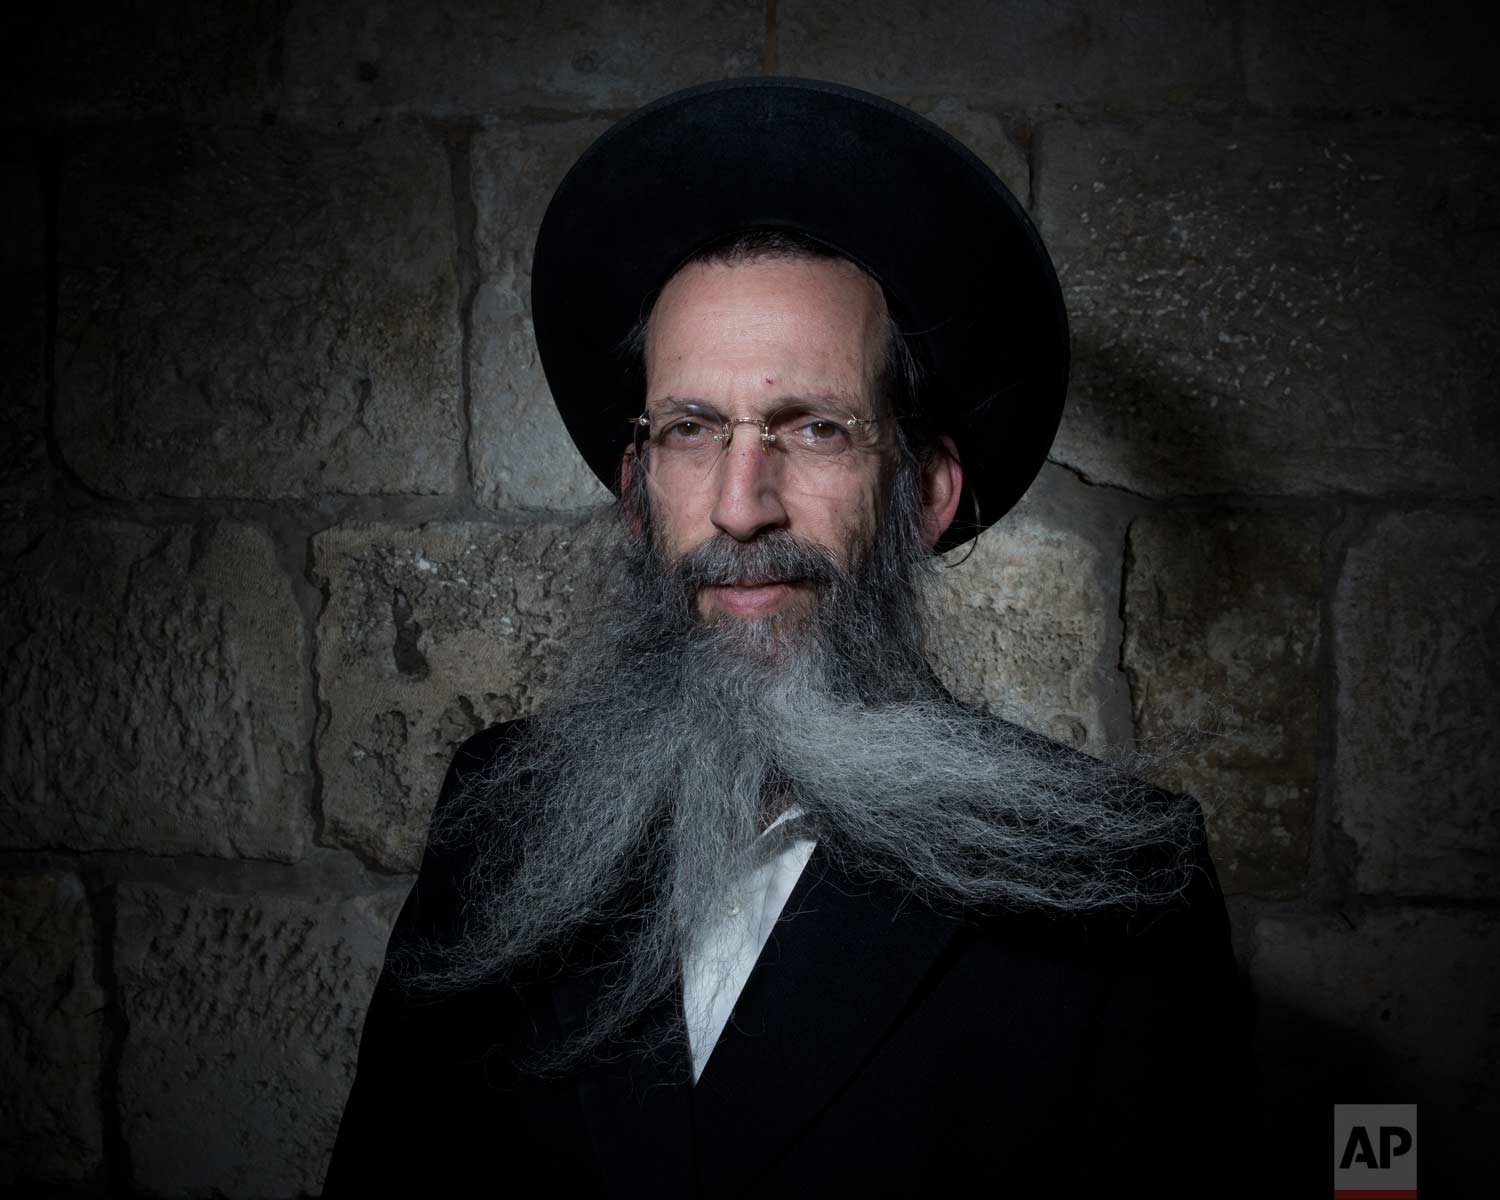 In this Sunday, Feb. 11, 2018 photo, Tzvi Schiff, a, Ultra-Orthodox Jew, poses for a portrait in Jerusalem's Old City. (AP Photo/Oded Balilty)